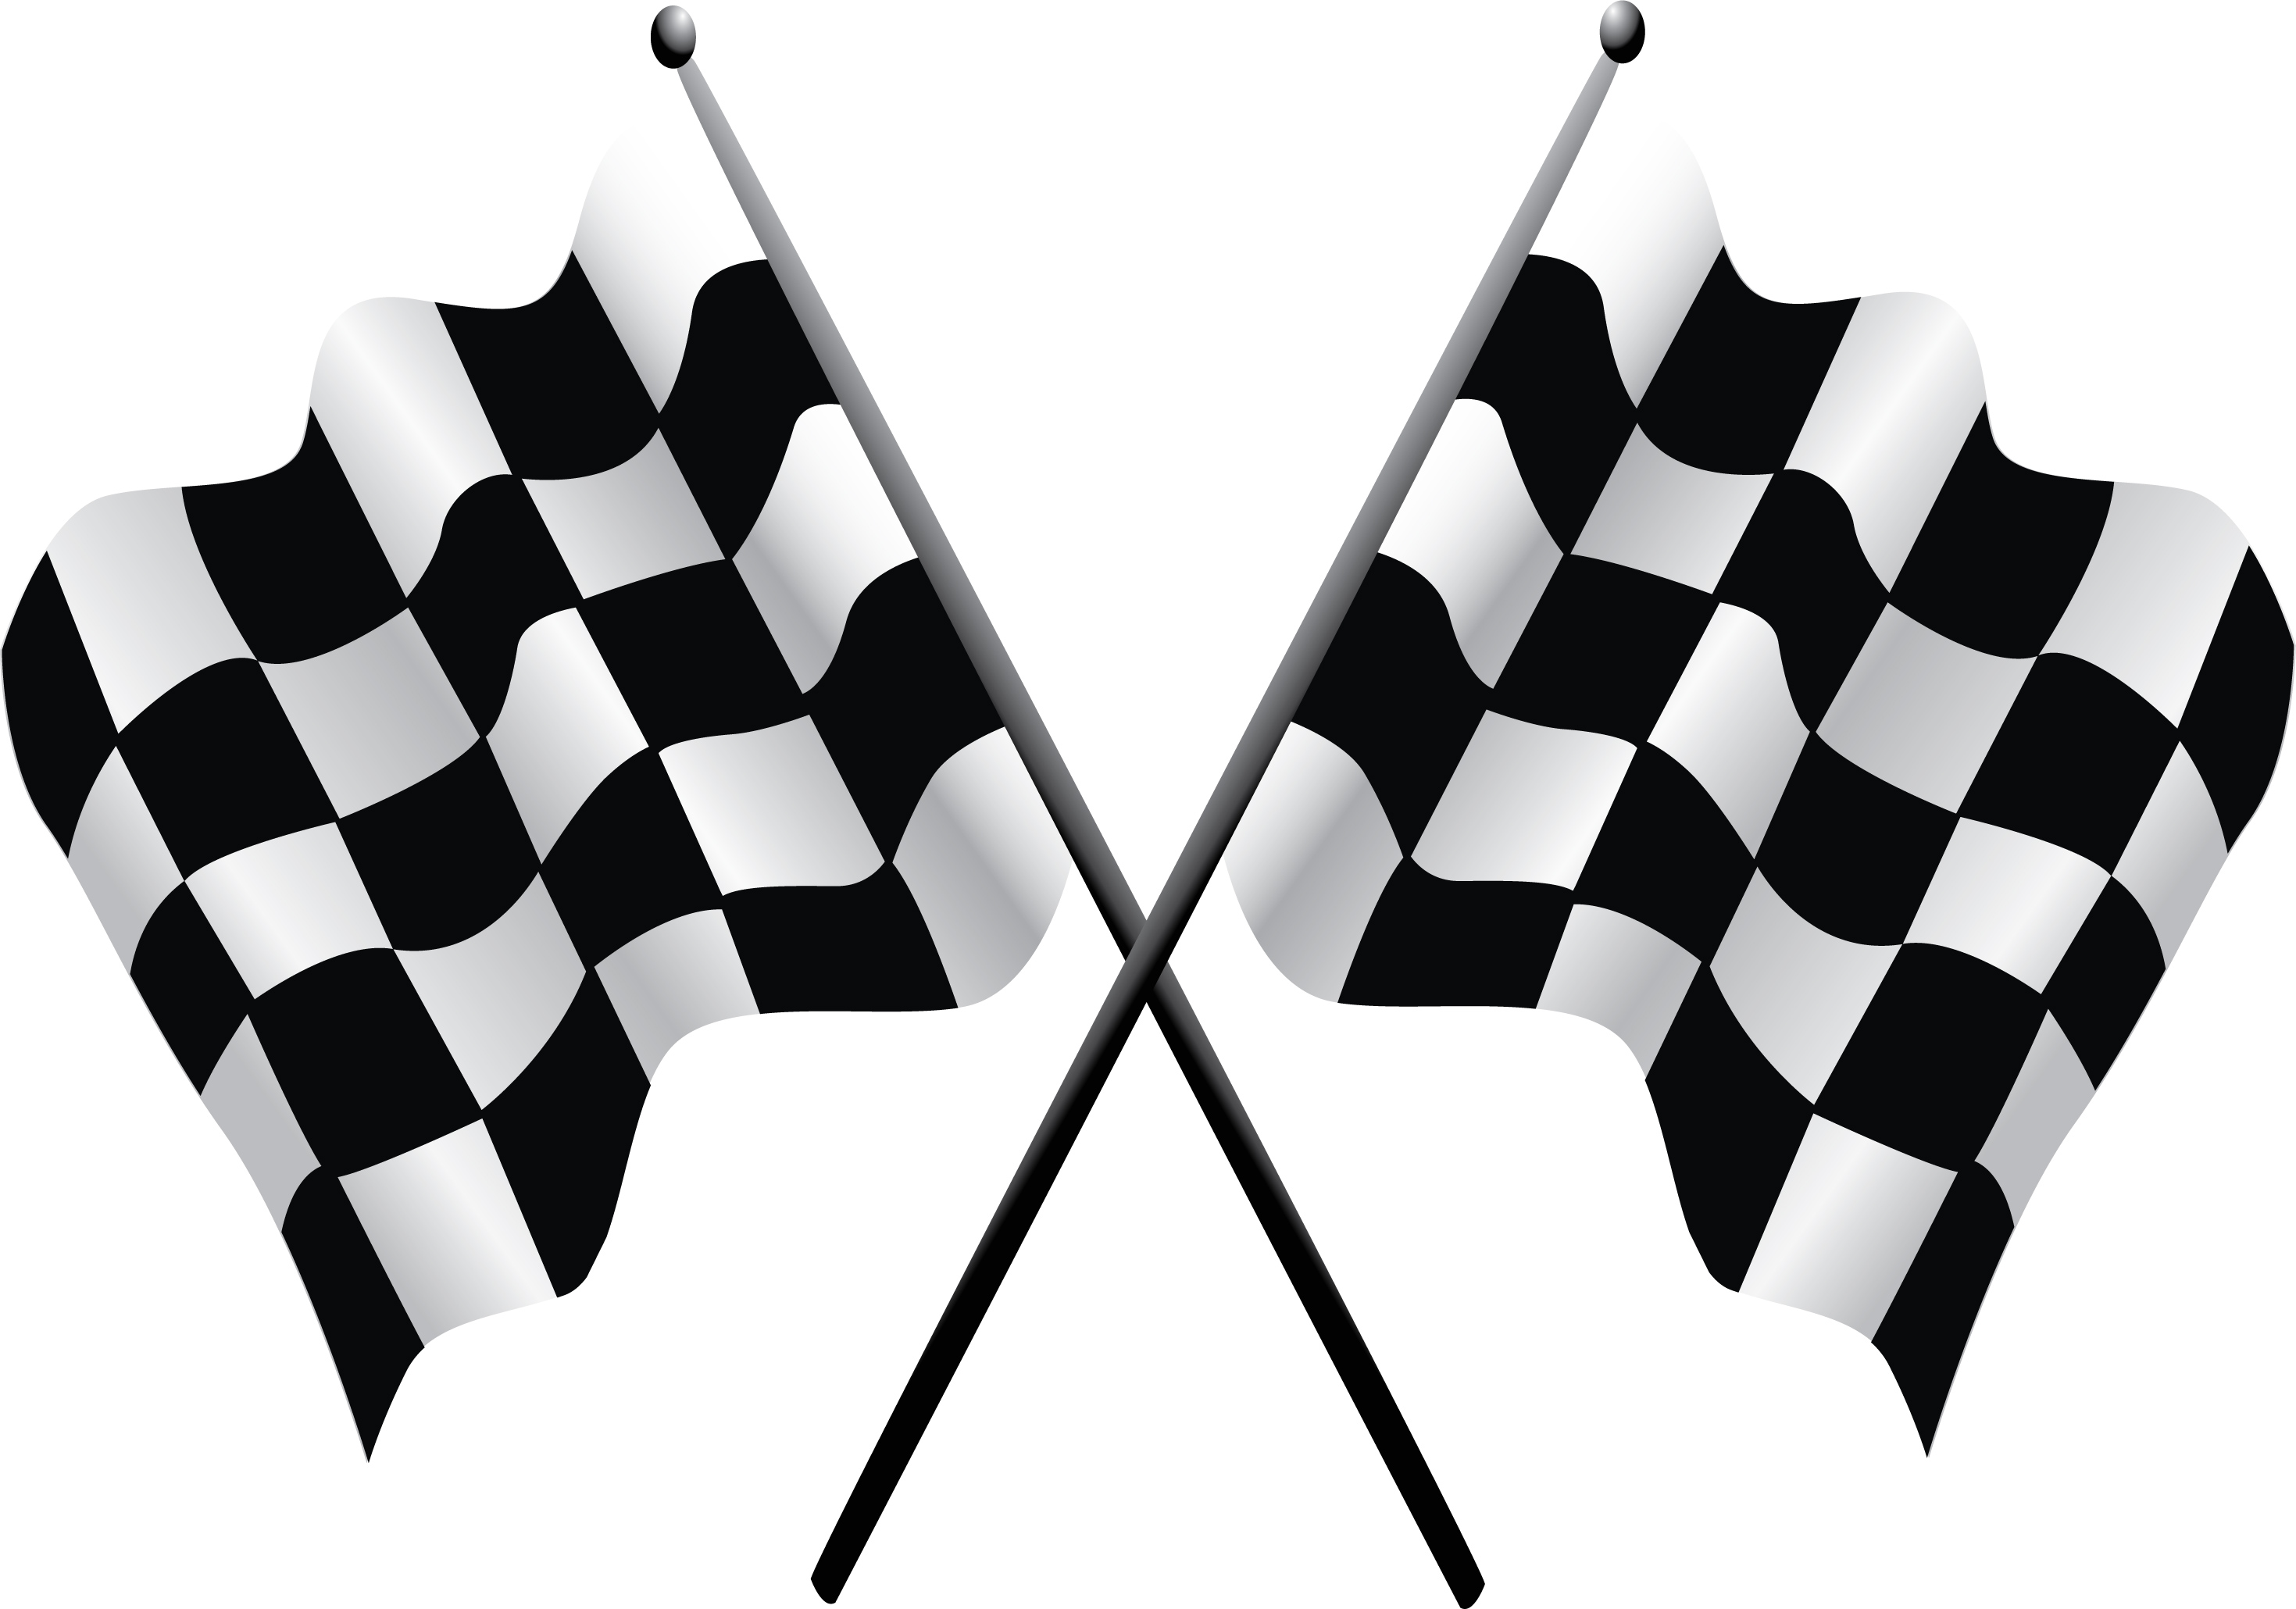 Checker flag. Free racing flags download